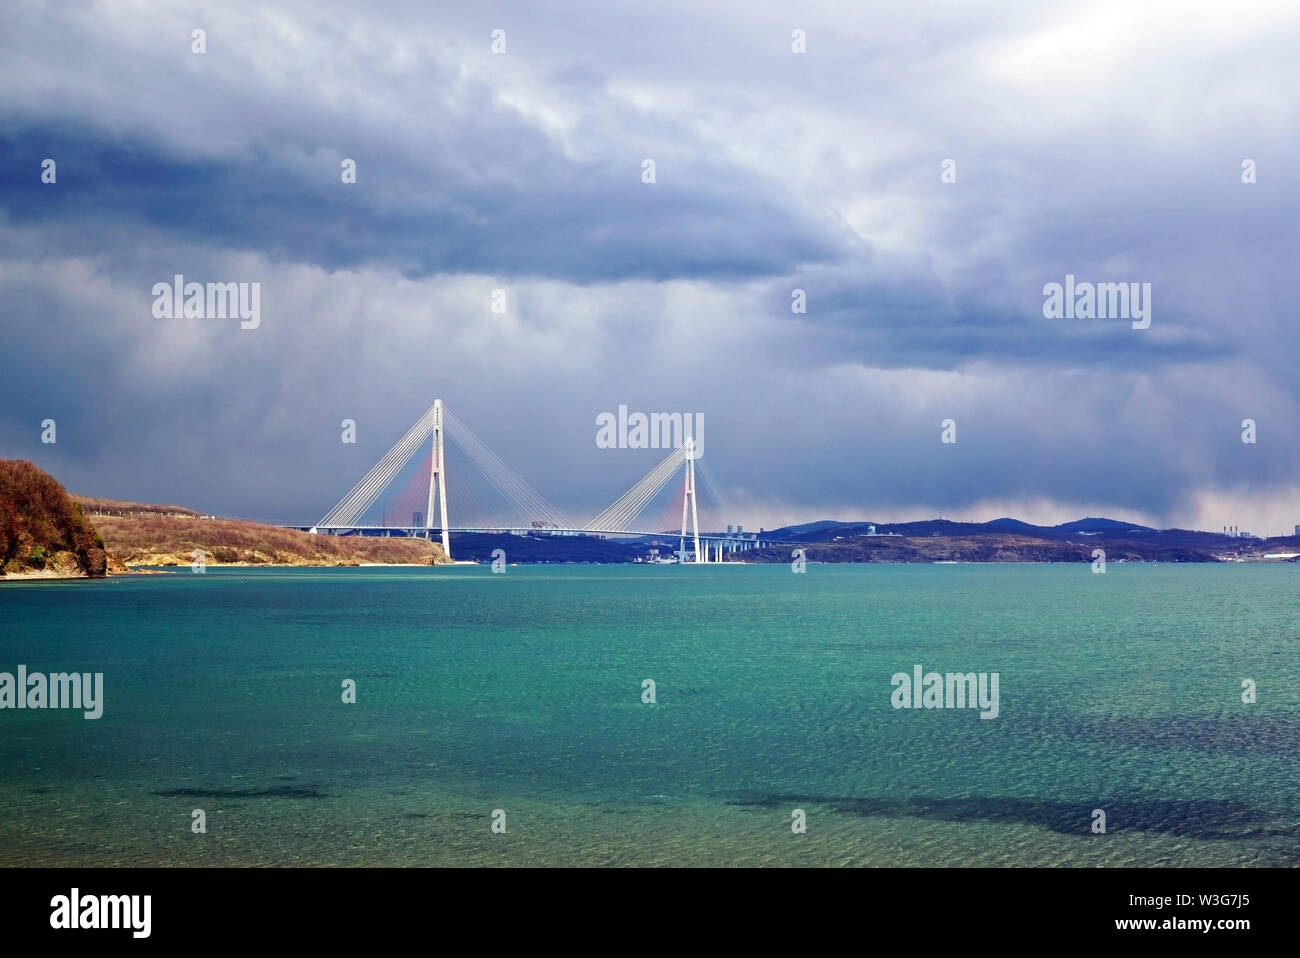 Bay by the sea with turquoise water. In the background cable stayed bridge. Stormy sky overcast. Russia, Vladivostok, island Russian - Stock Image